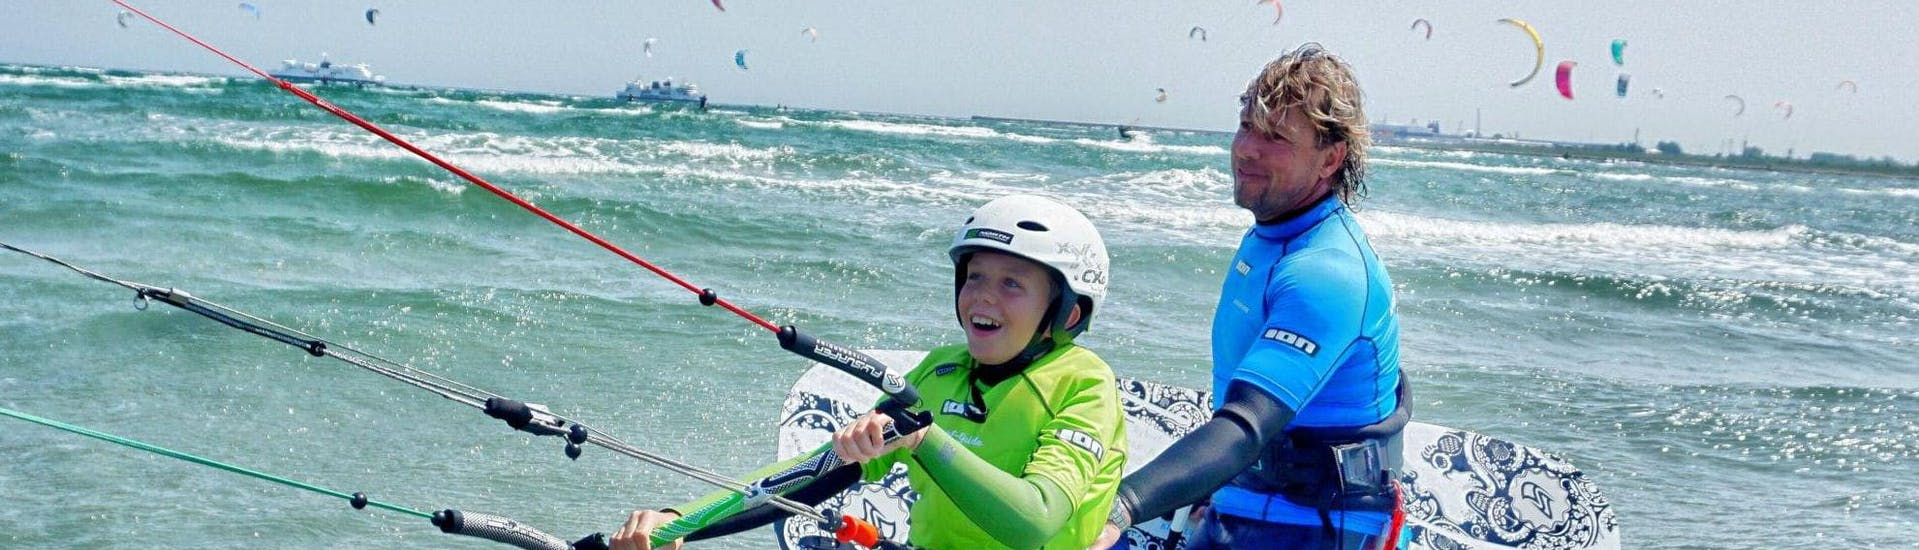 "Kitesurfing Lessons ""Refresher-Premium"" for Kids & Adults"